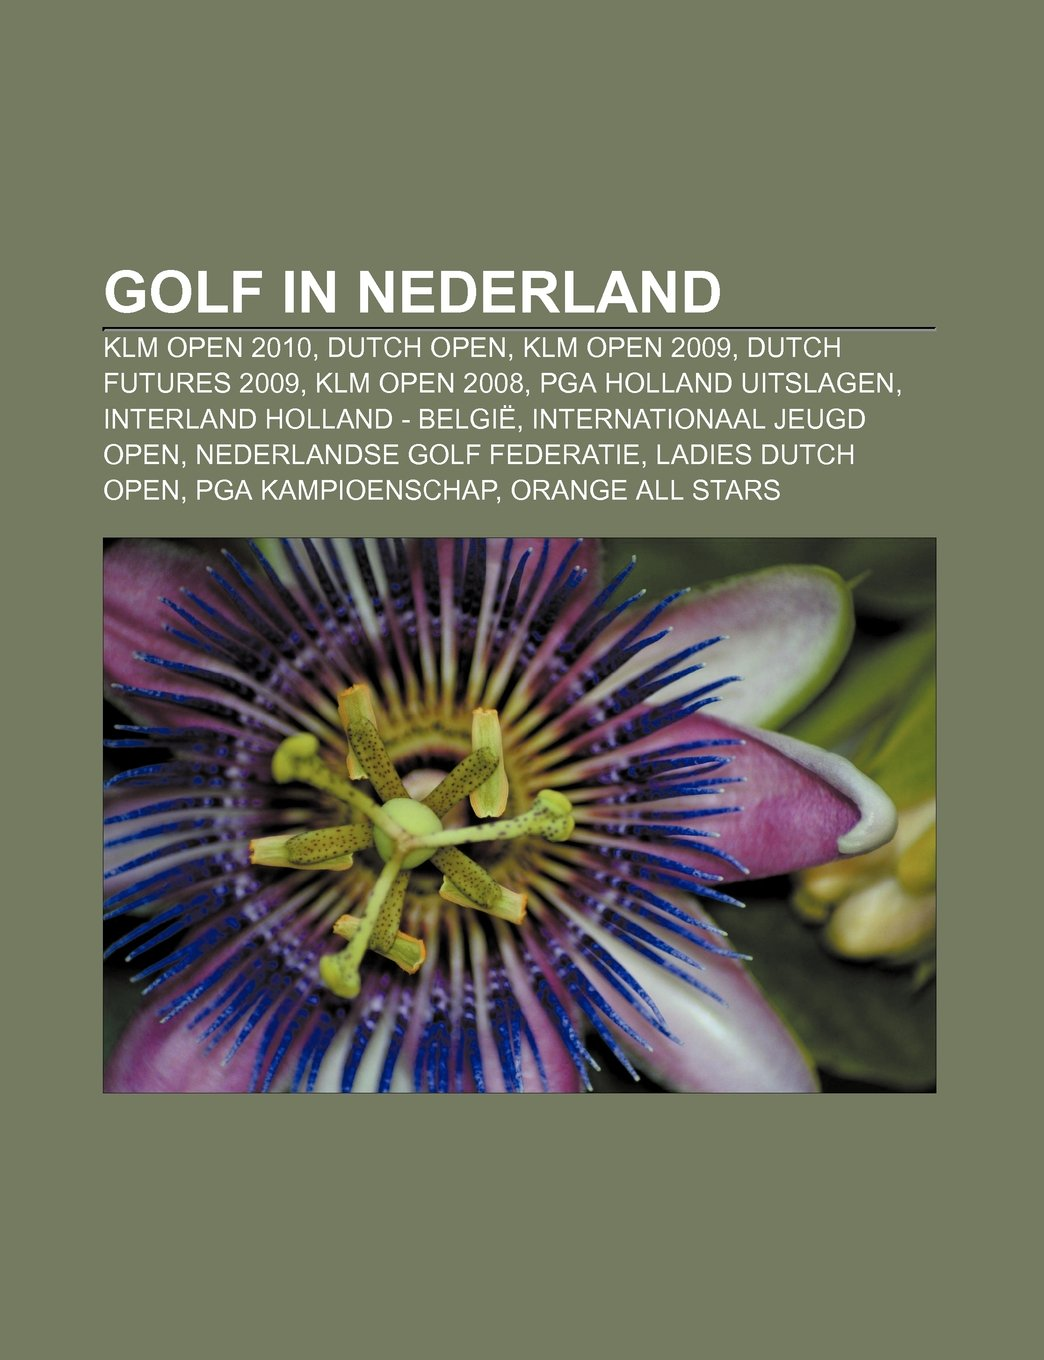 Golf in Nederland: KLM Open 2010, Dutch Open, KLM Open 2009 ...